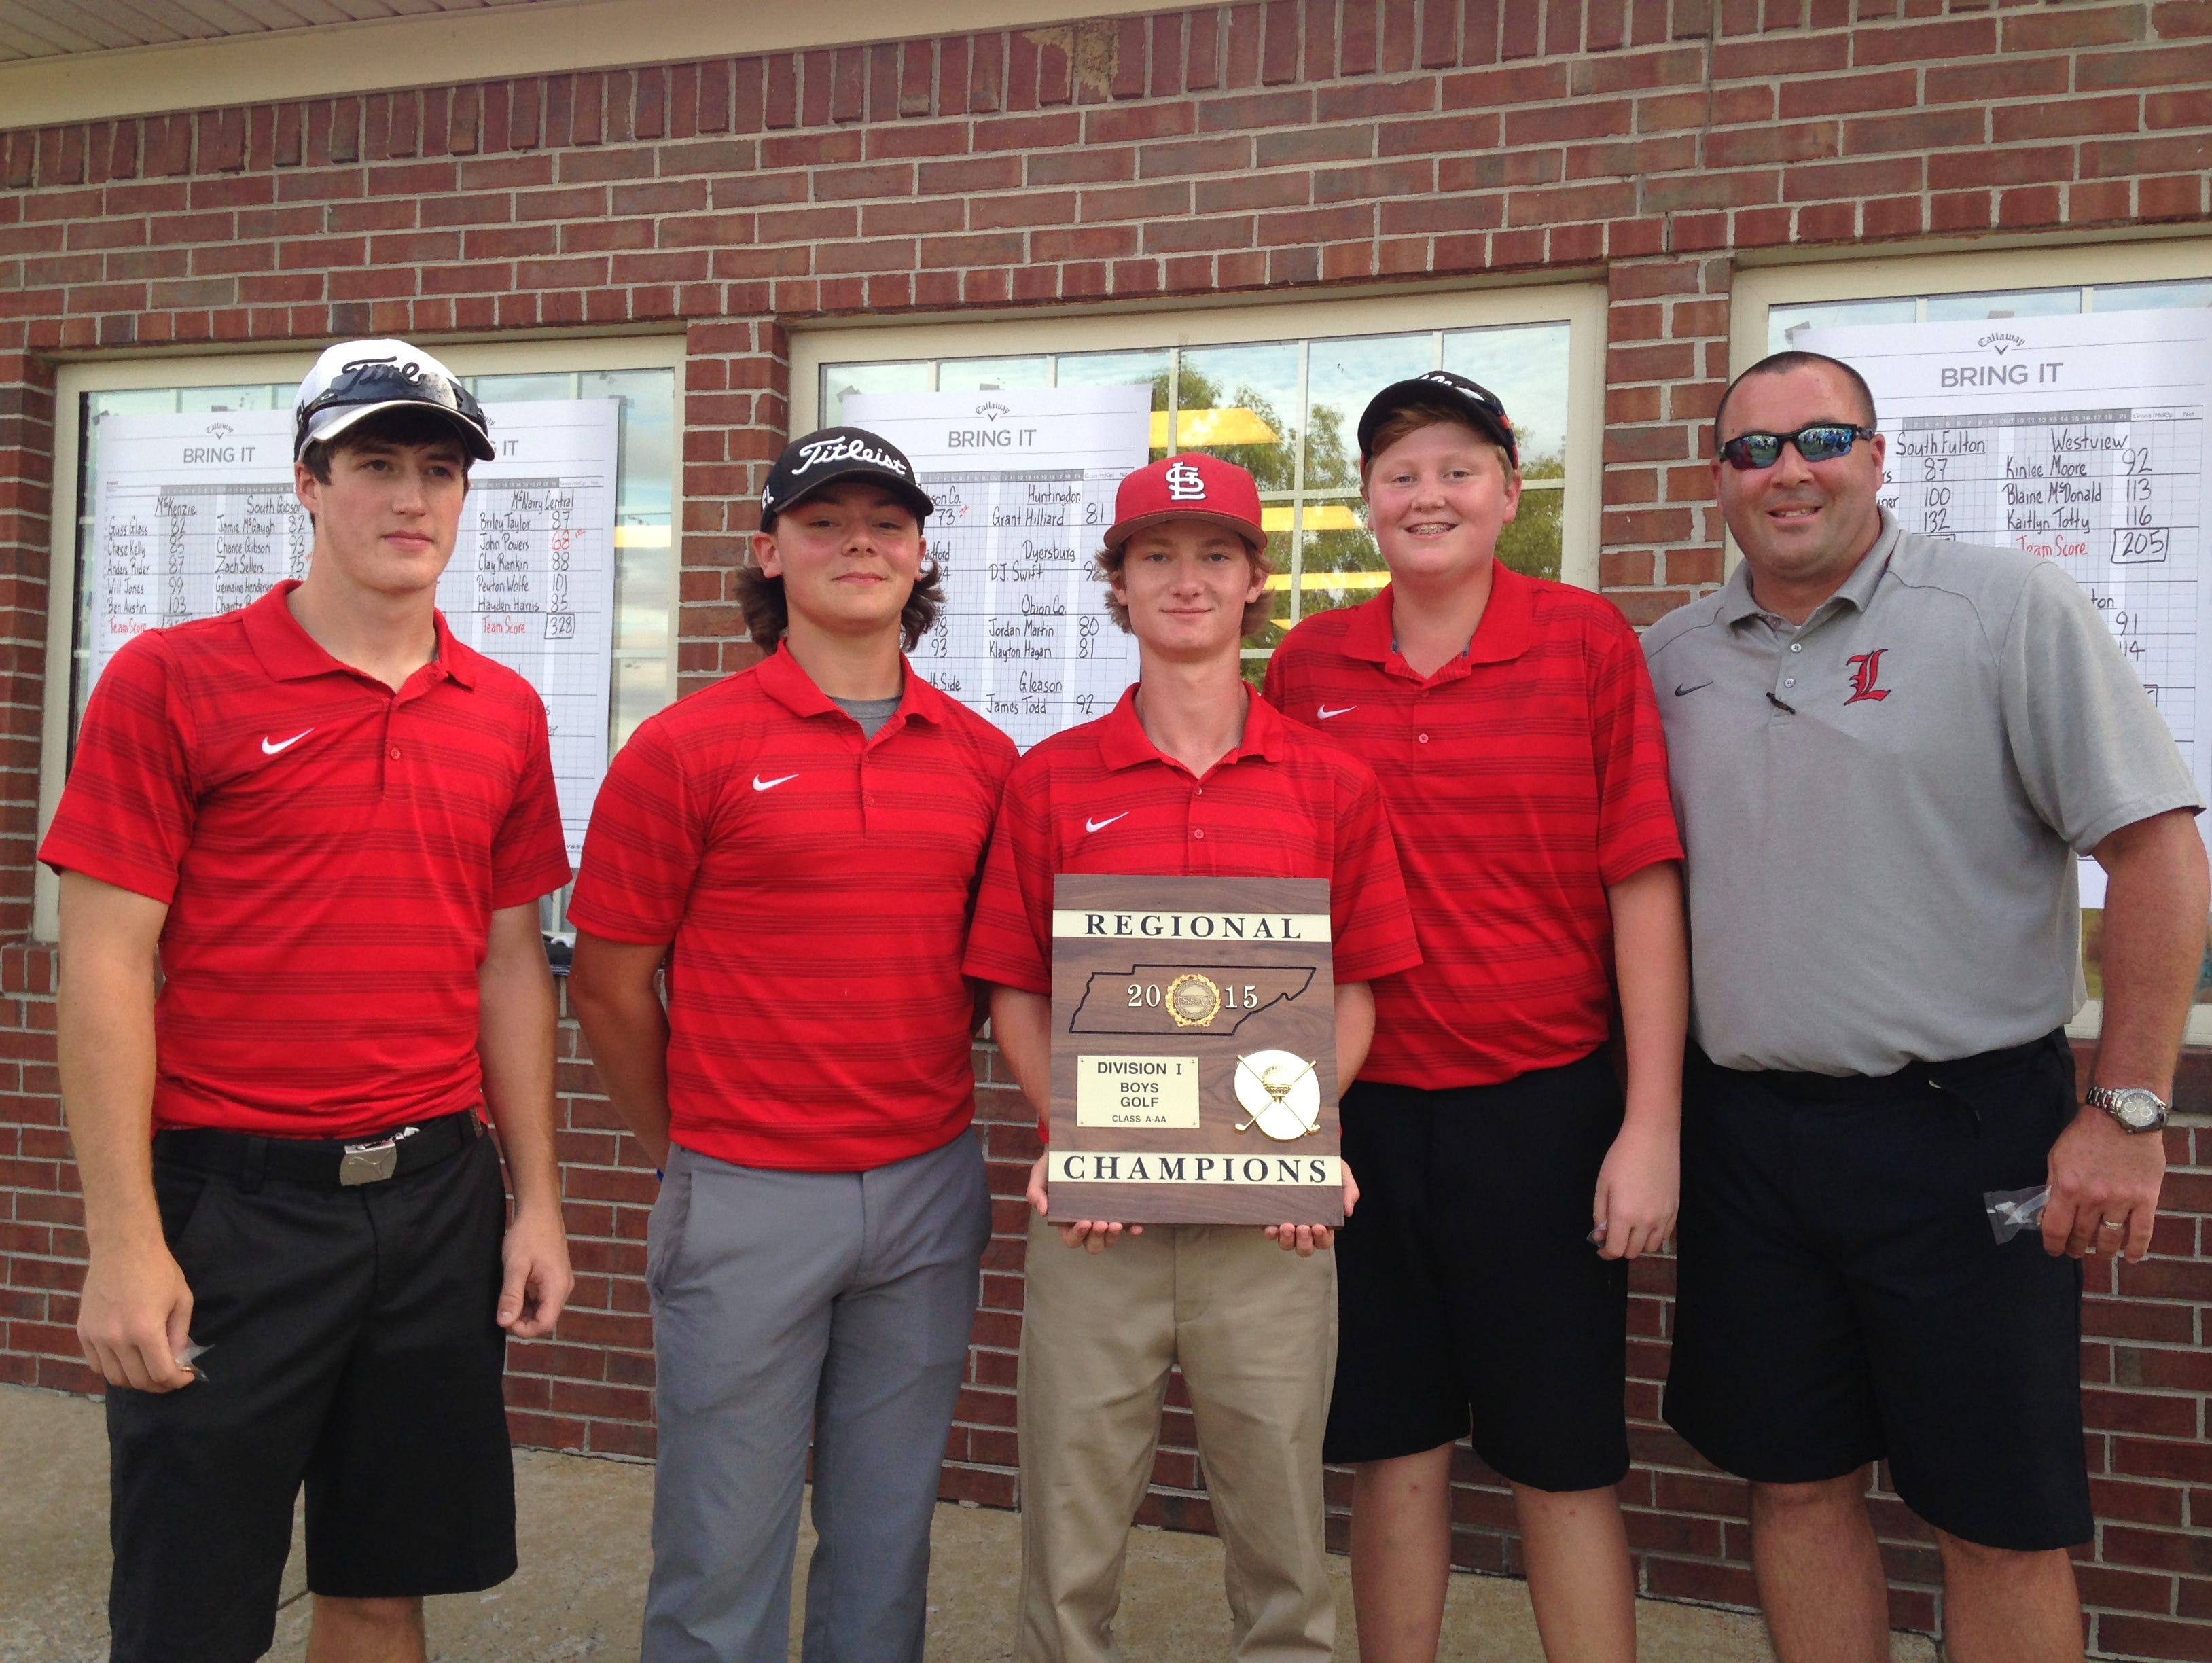 Lexington's boys pose with the region title trophy after beating Westview in a playoff Monday in Dyersburg.